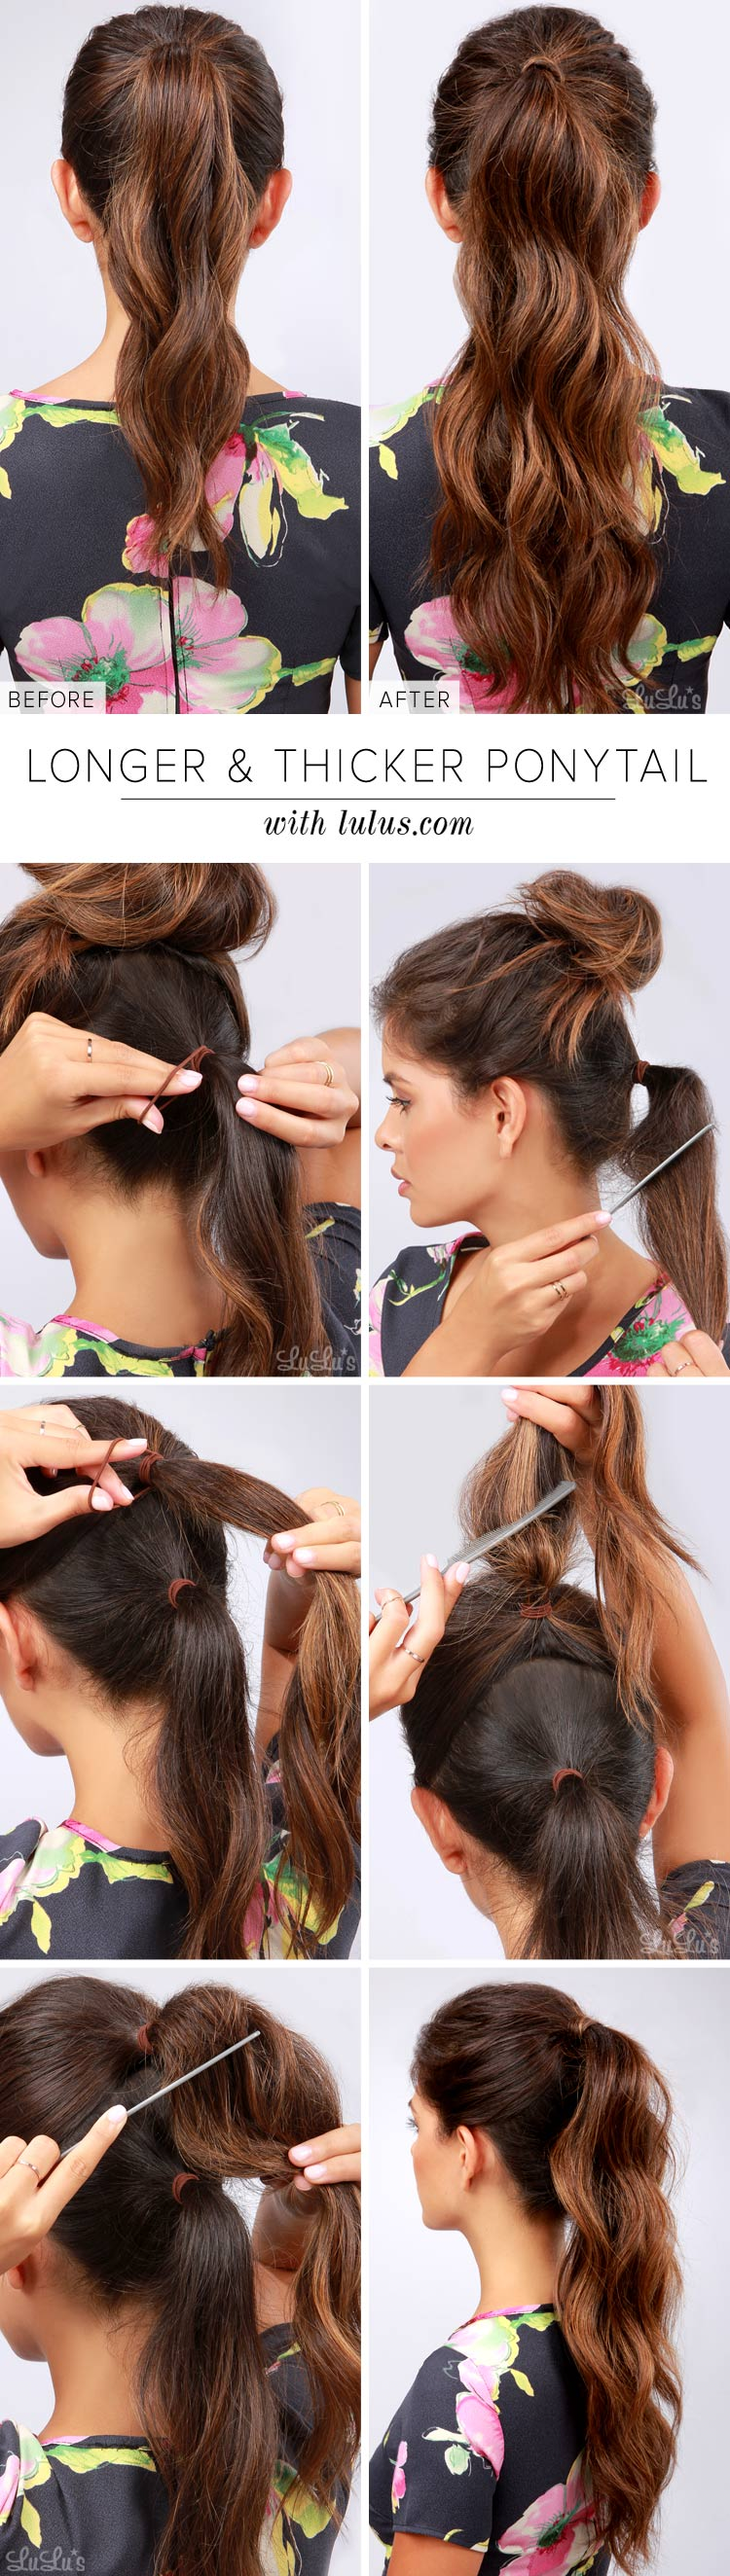 thicker ponytail